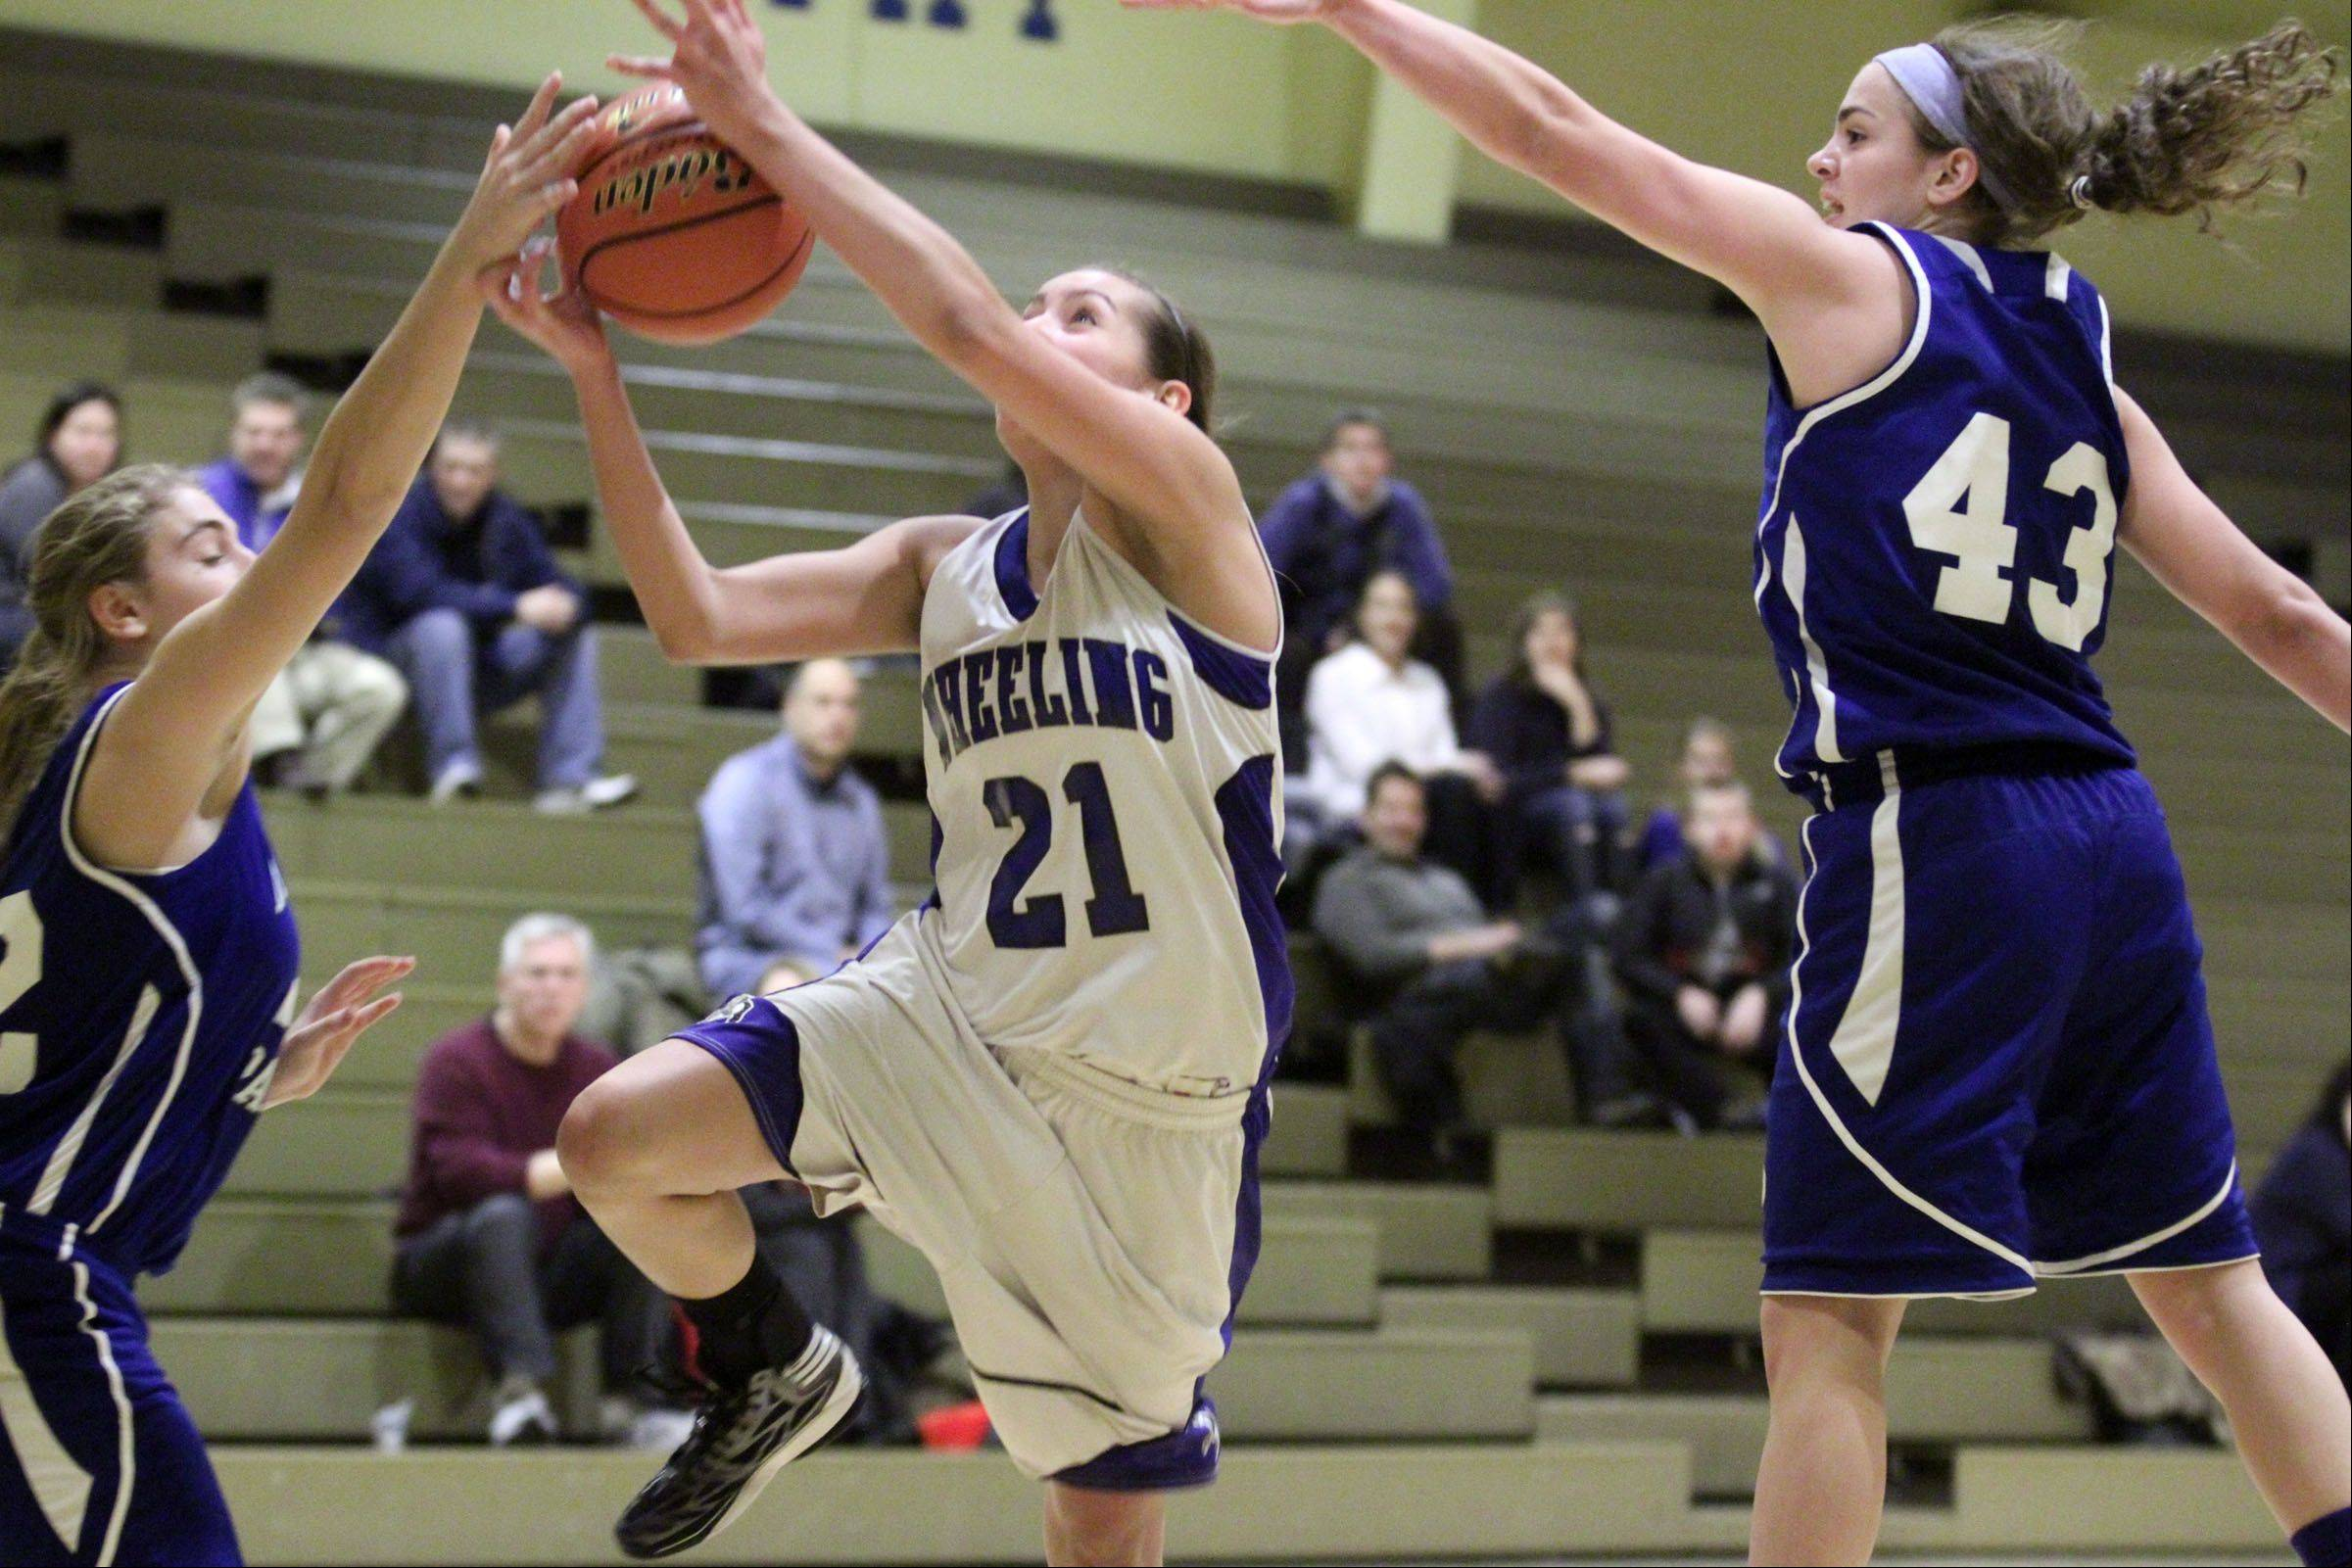 Wheeling's Deanna Kuzmanic drives the lane, splitting a pair of Highland Park defenders including Lena Munzer, right, for a layup at Wheeling on Thursday.